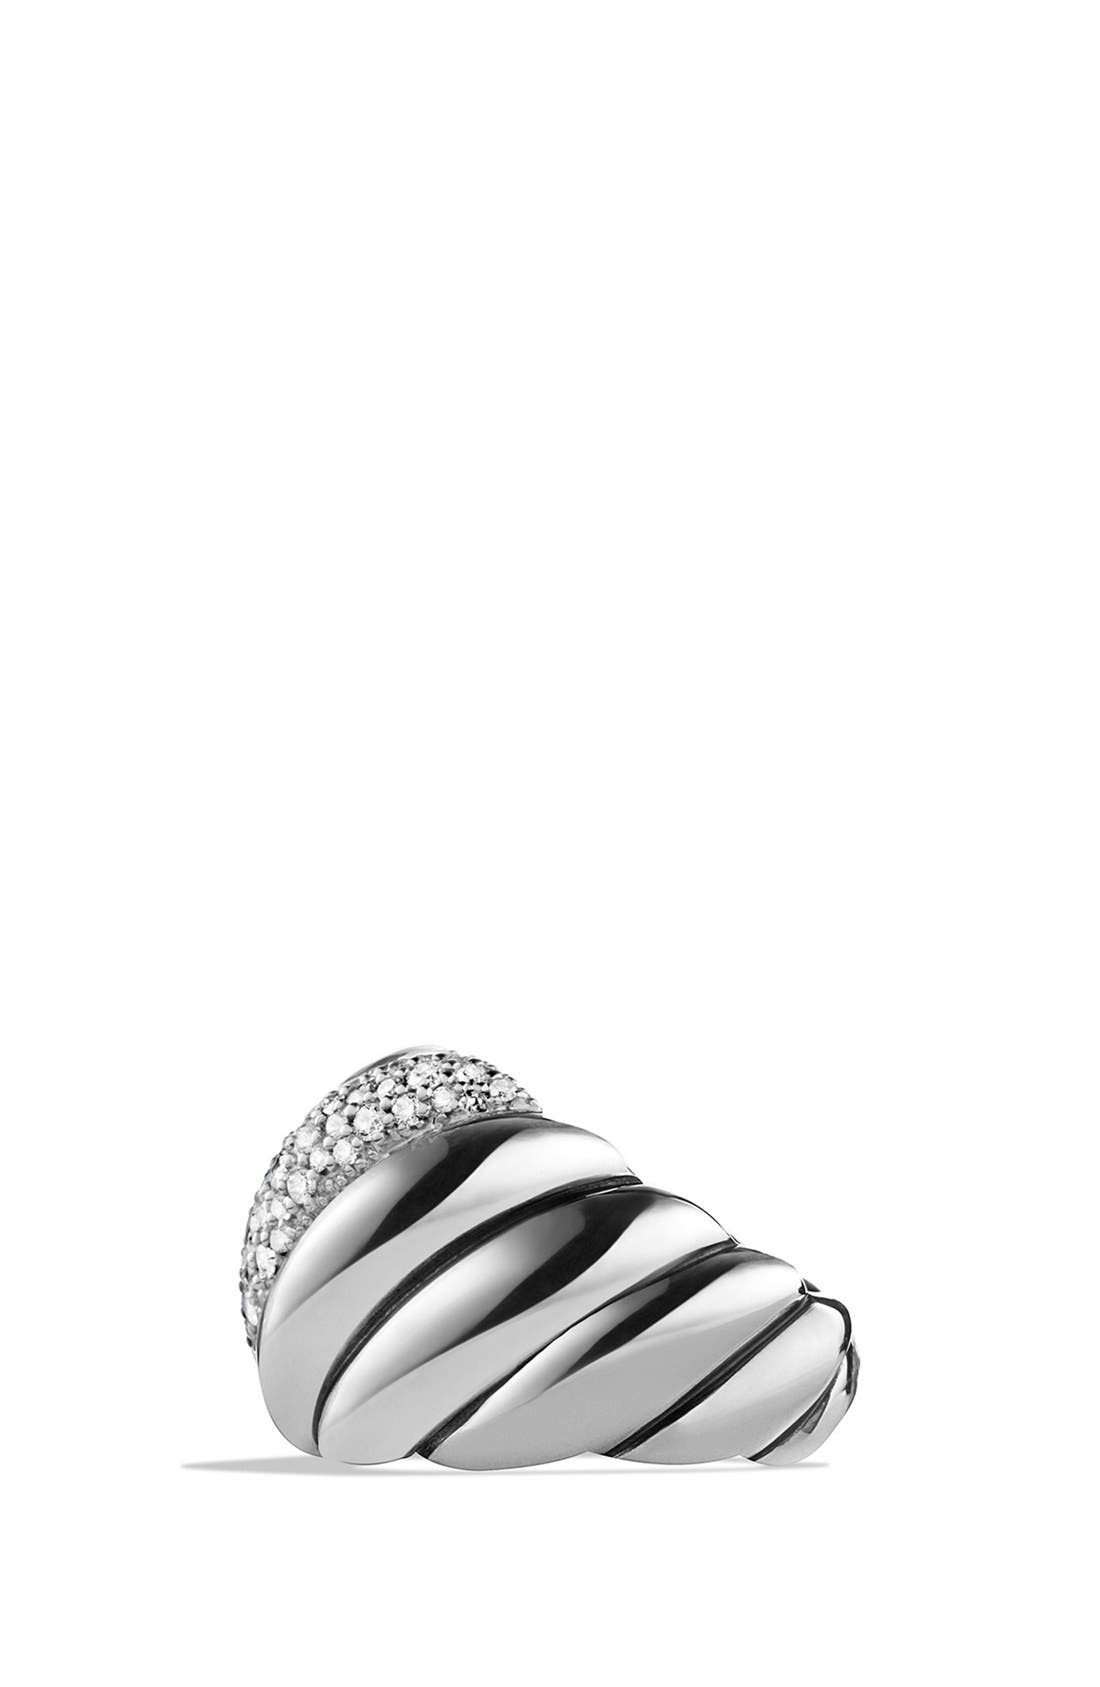 'Hampton Cable' Ring with Diamonds,                             Alternate thumbnail 4, color,                             041